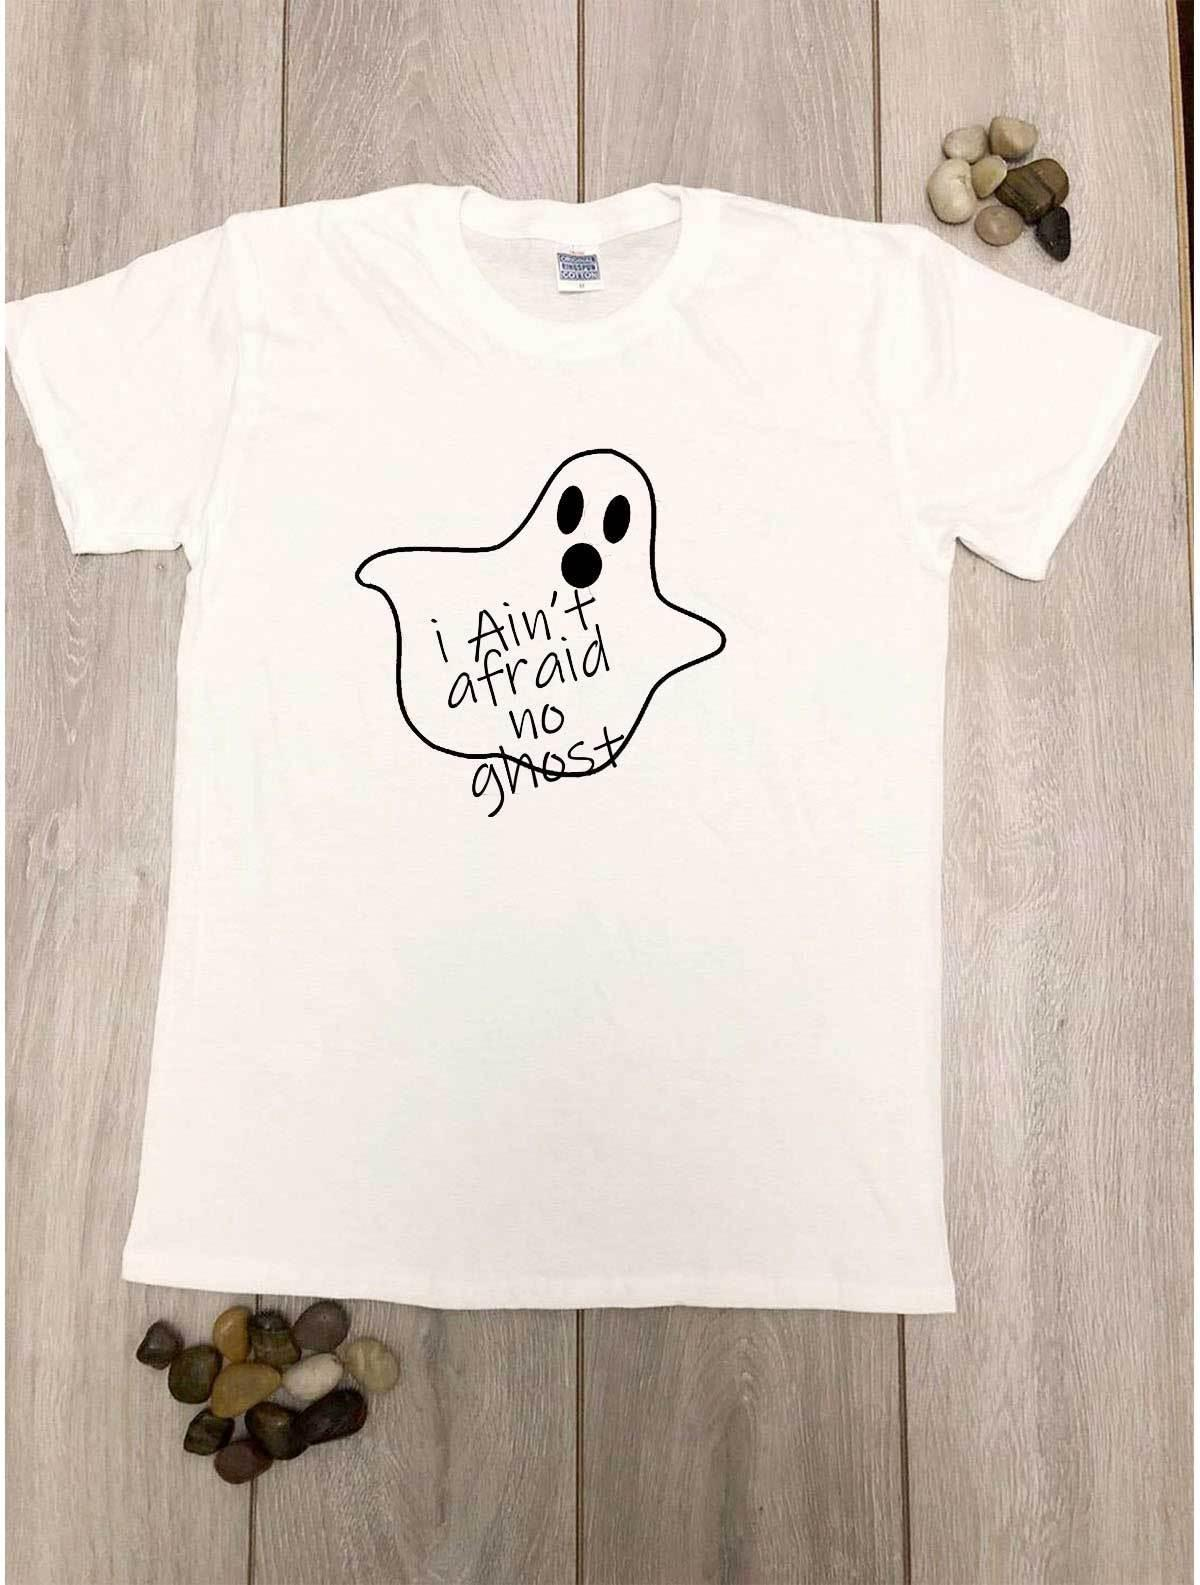 246f5f63c I ain't afraid of no Ghost Halloween T shirt Paranormal Ghost Hunting Funny  TeeFunny free shipping Unisex Casual Tshirt top